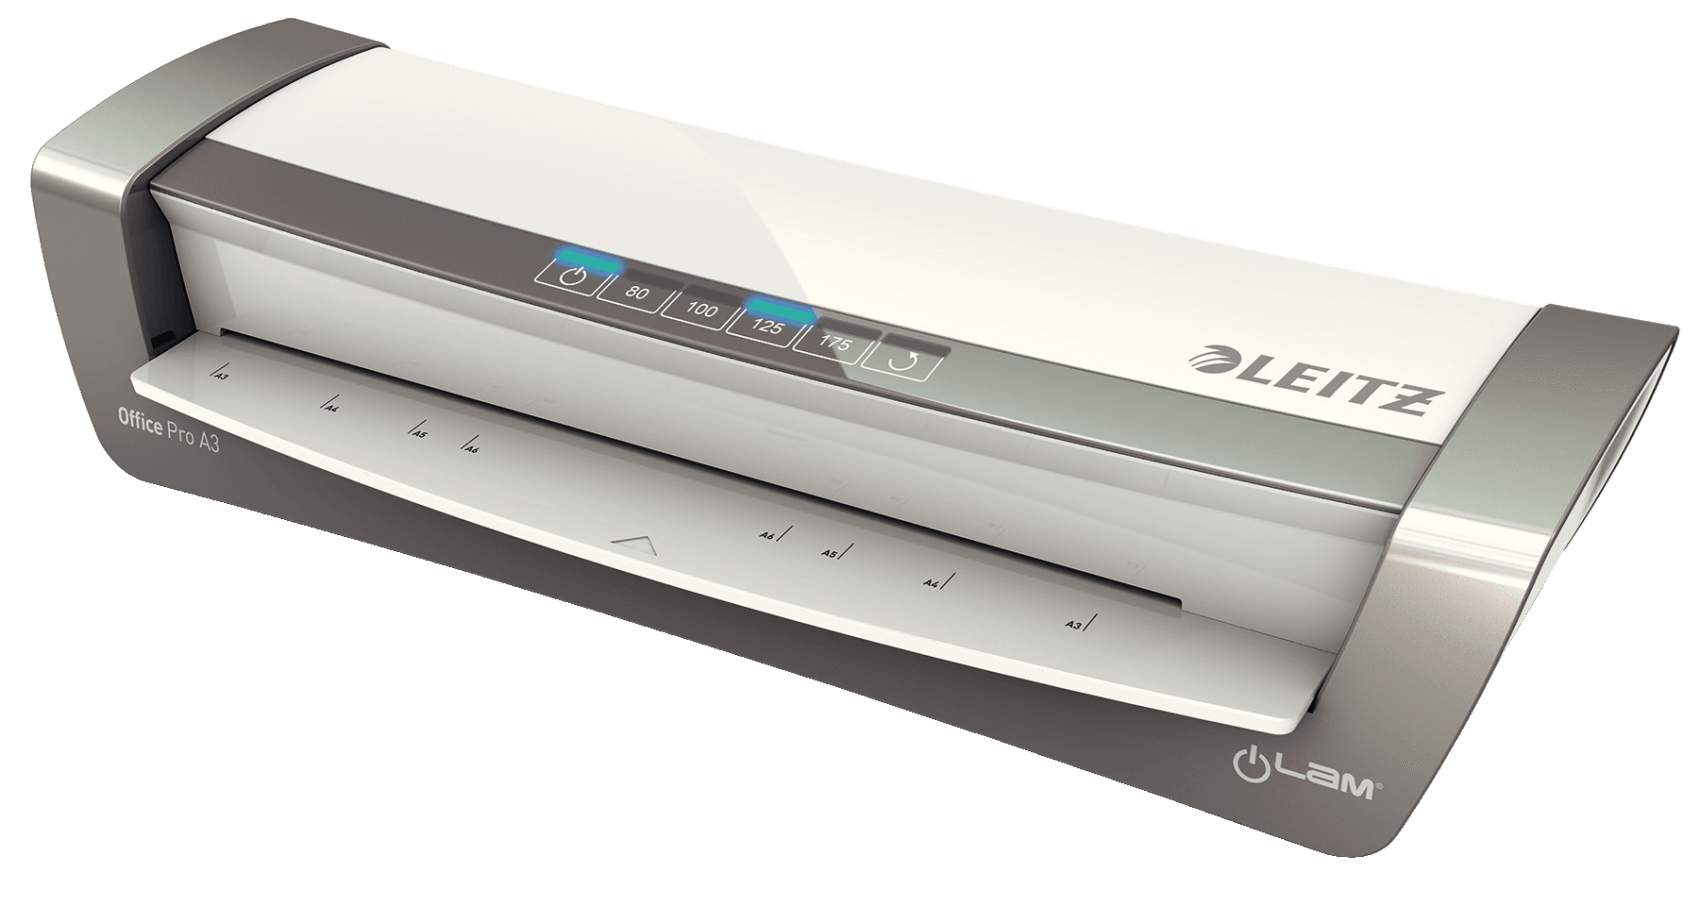 Leitz iLAM Office Pro A3 Hot laminator 500mm/min Grey, Silver